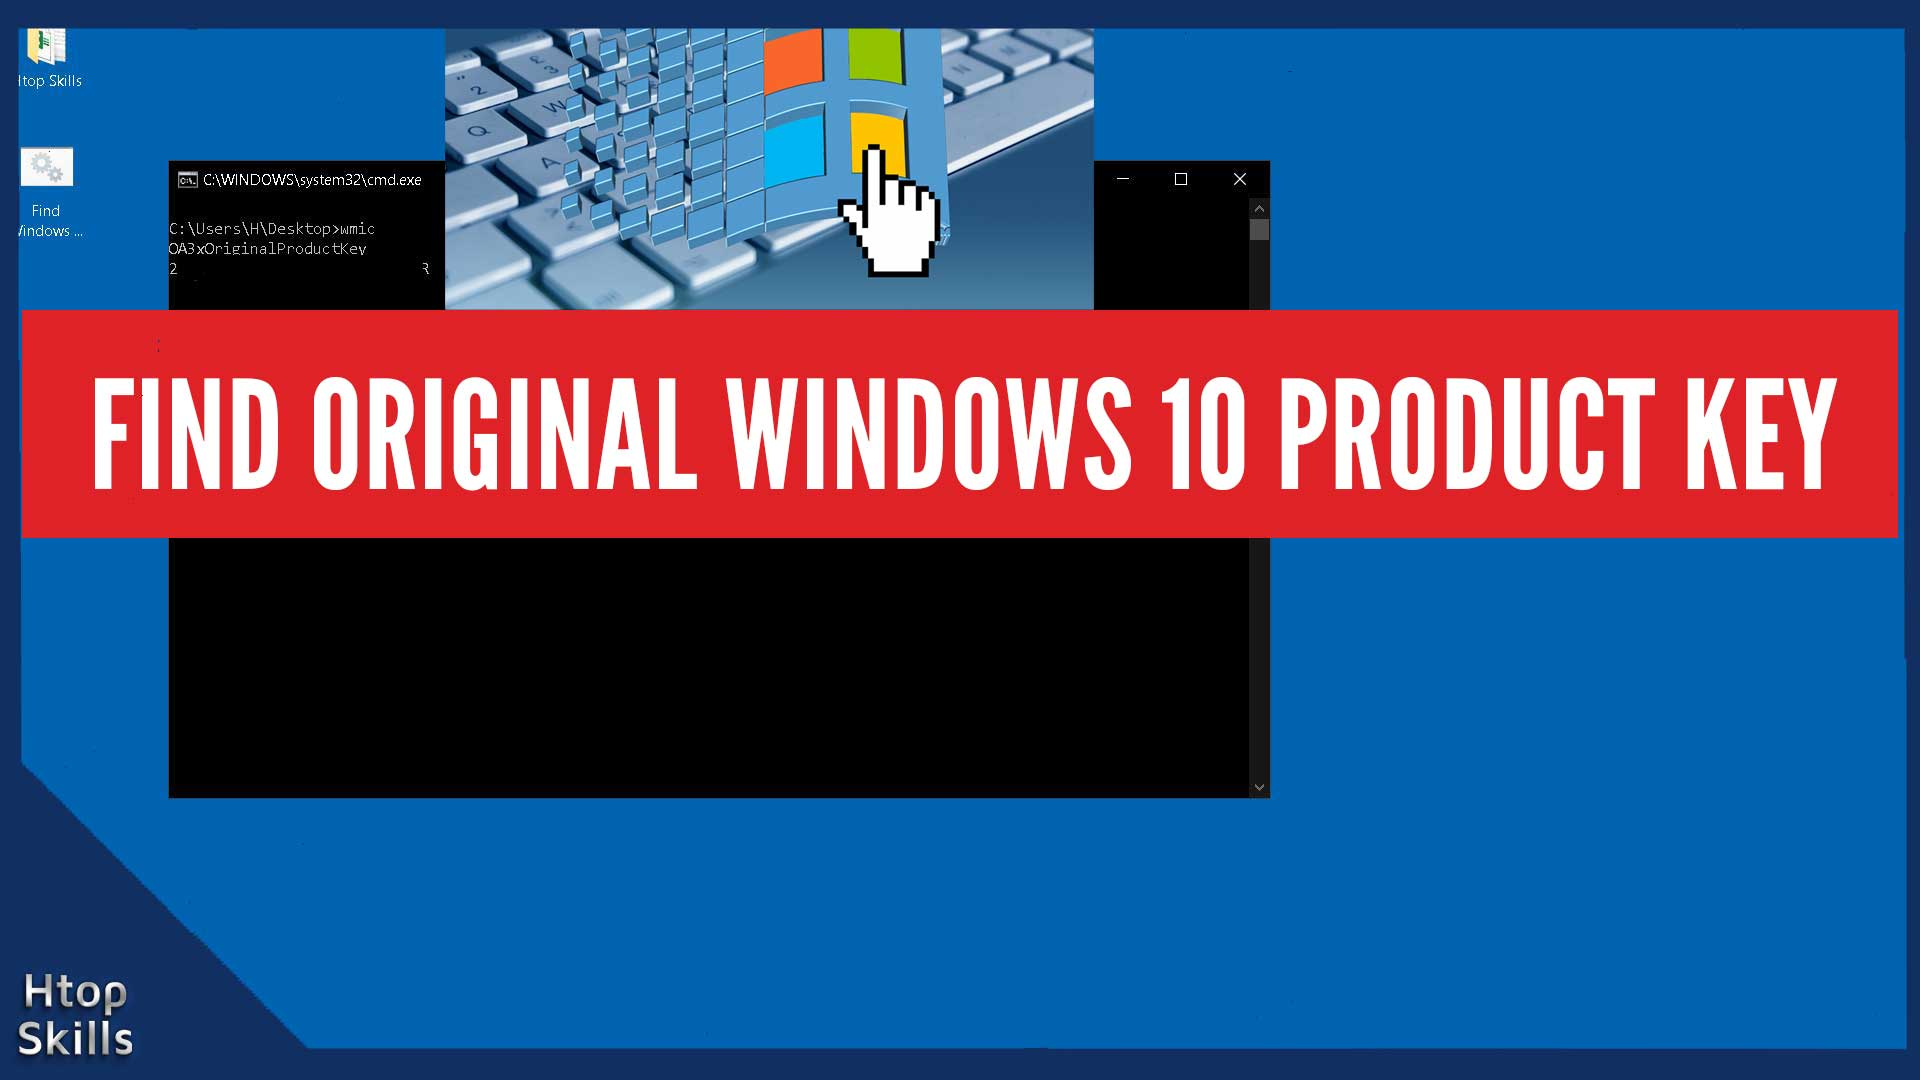 Thumbnail for the article How to find the original Windows 10 product key contains the Windows 10 desktop, a command prompt window, a keyboard, and a Microsoft Windows logo.